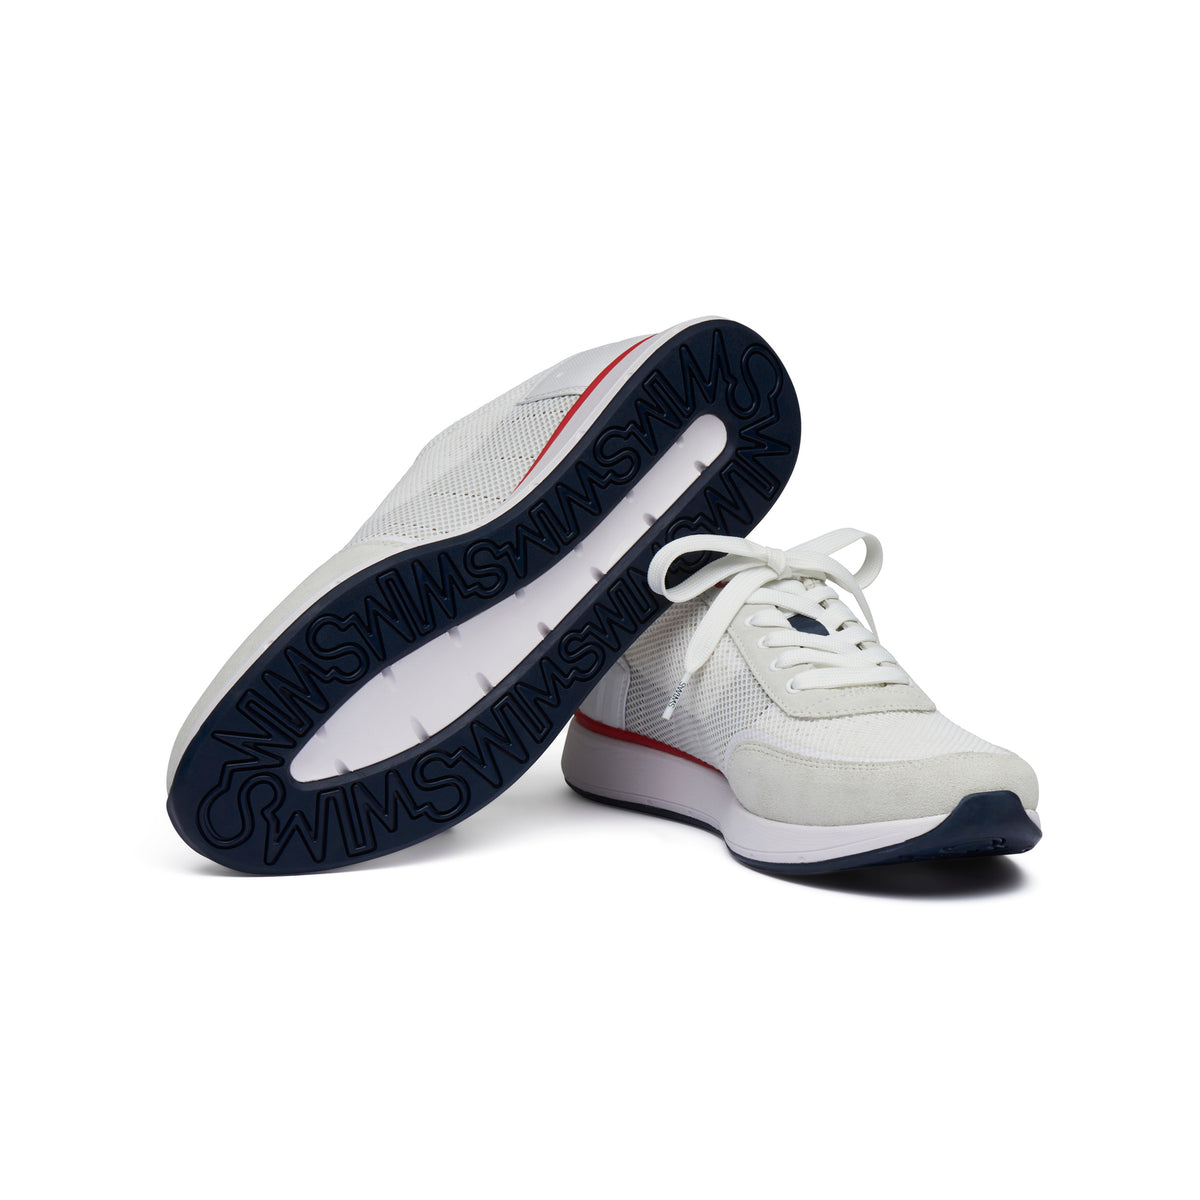 Breeze Wave Athletic - background::white,variant::White/Navy/Glacier Gray/Red